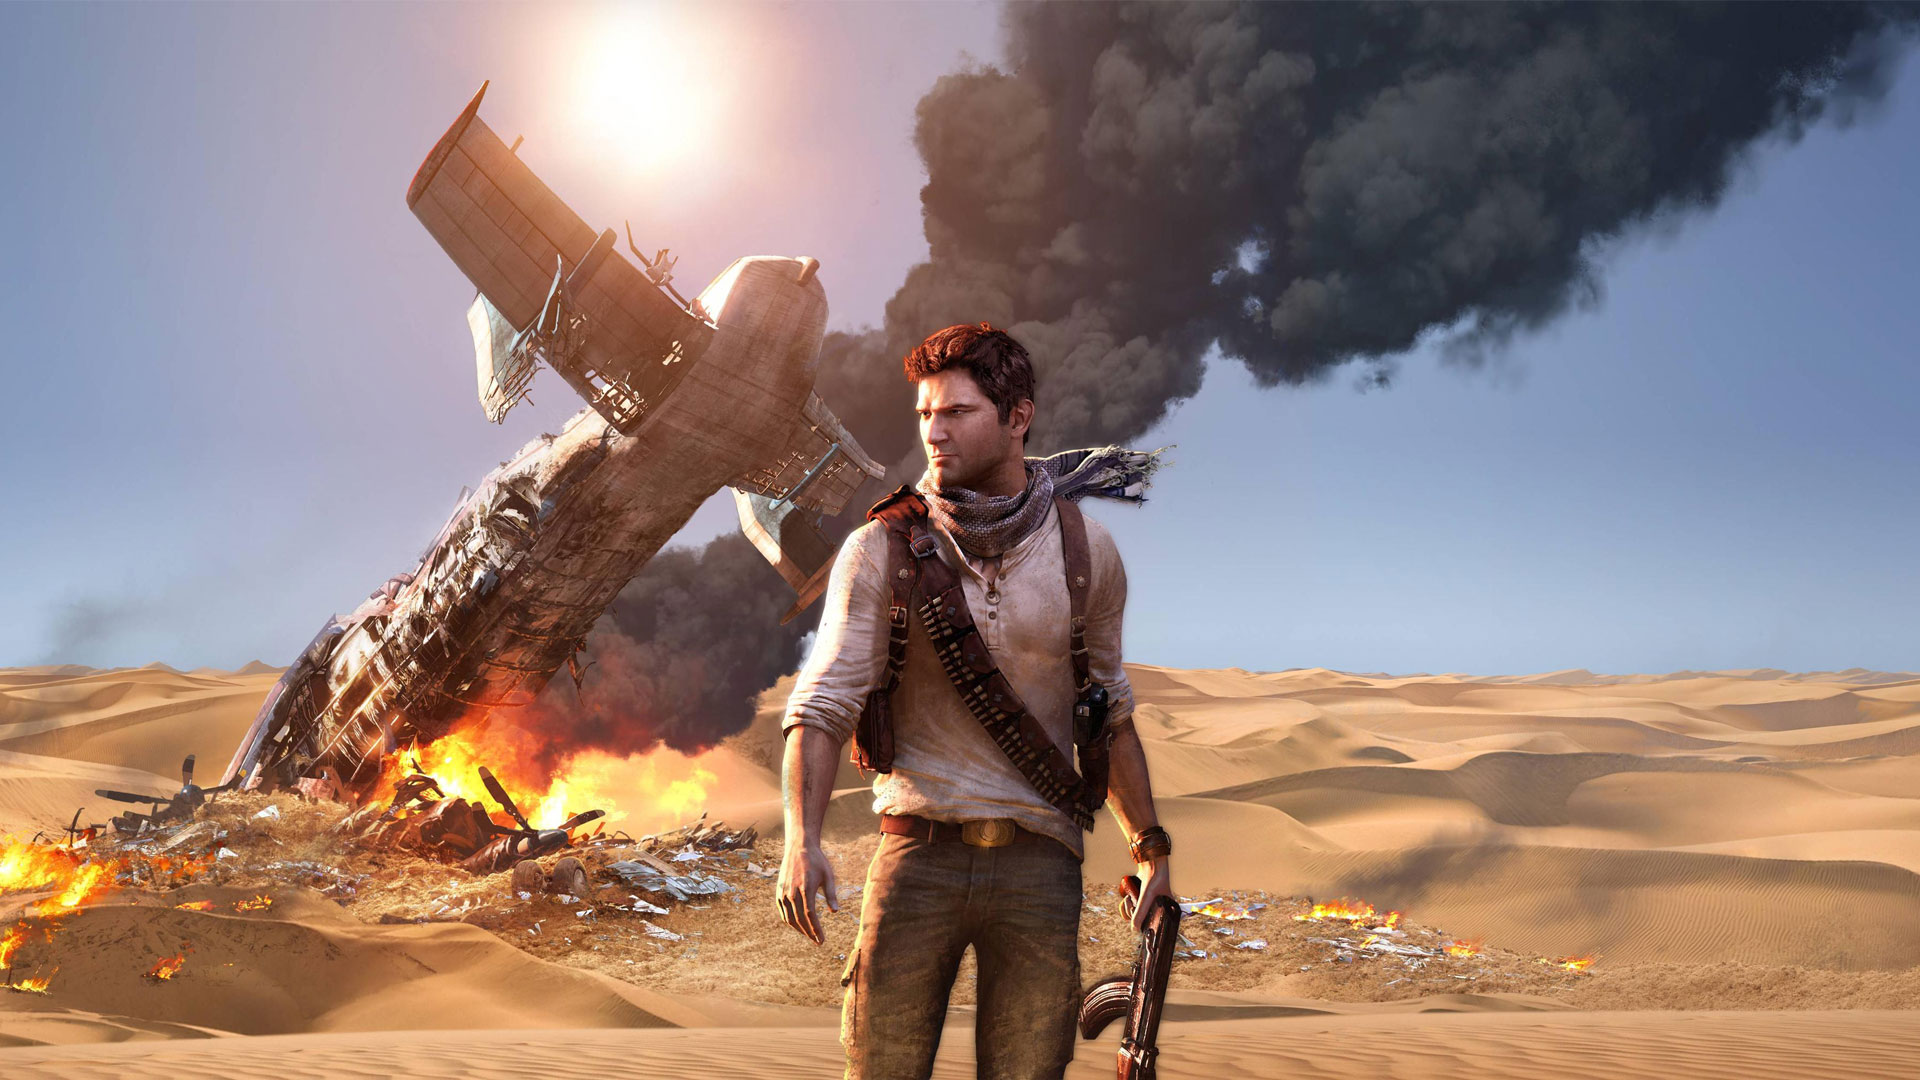 Uncharted 3 Drakes Deception Wallpapers in HD 1920x1080